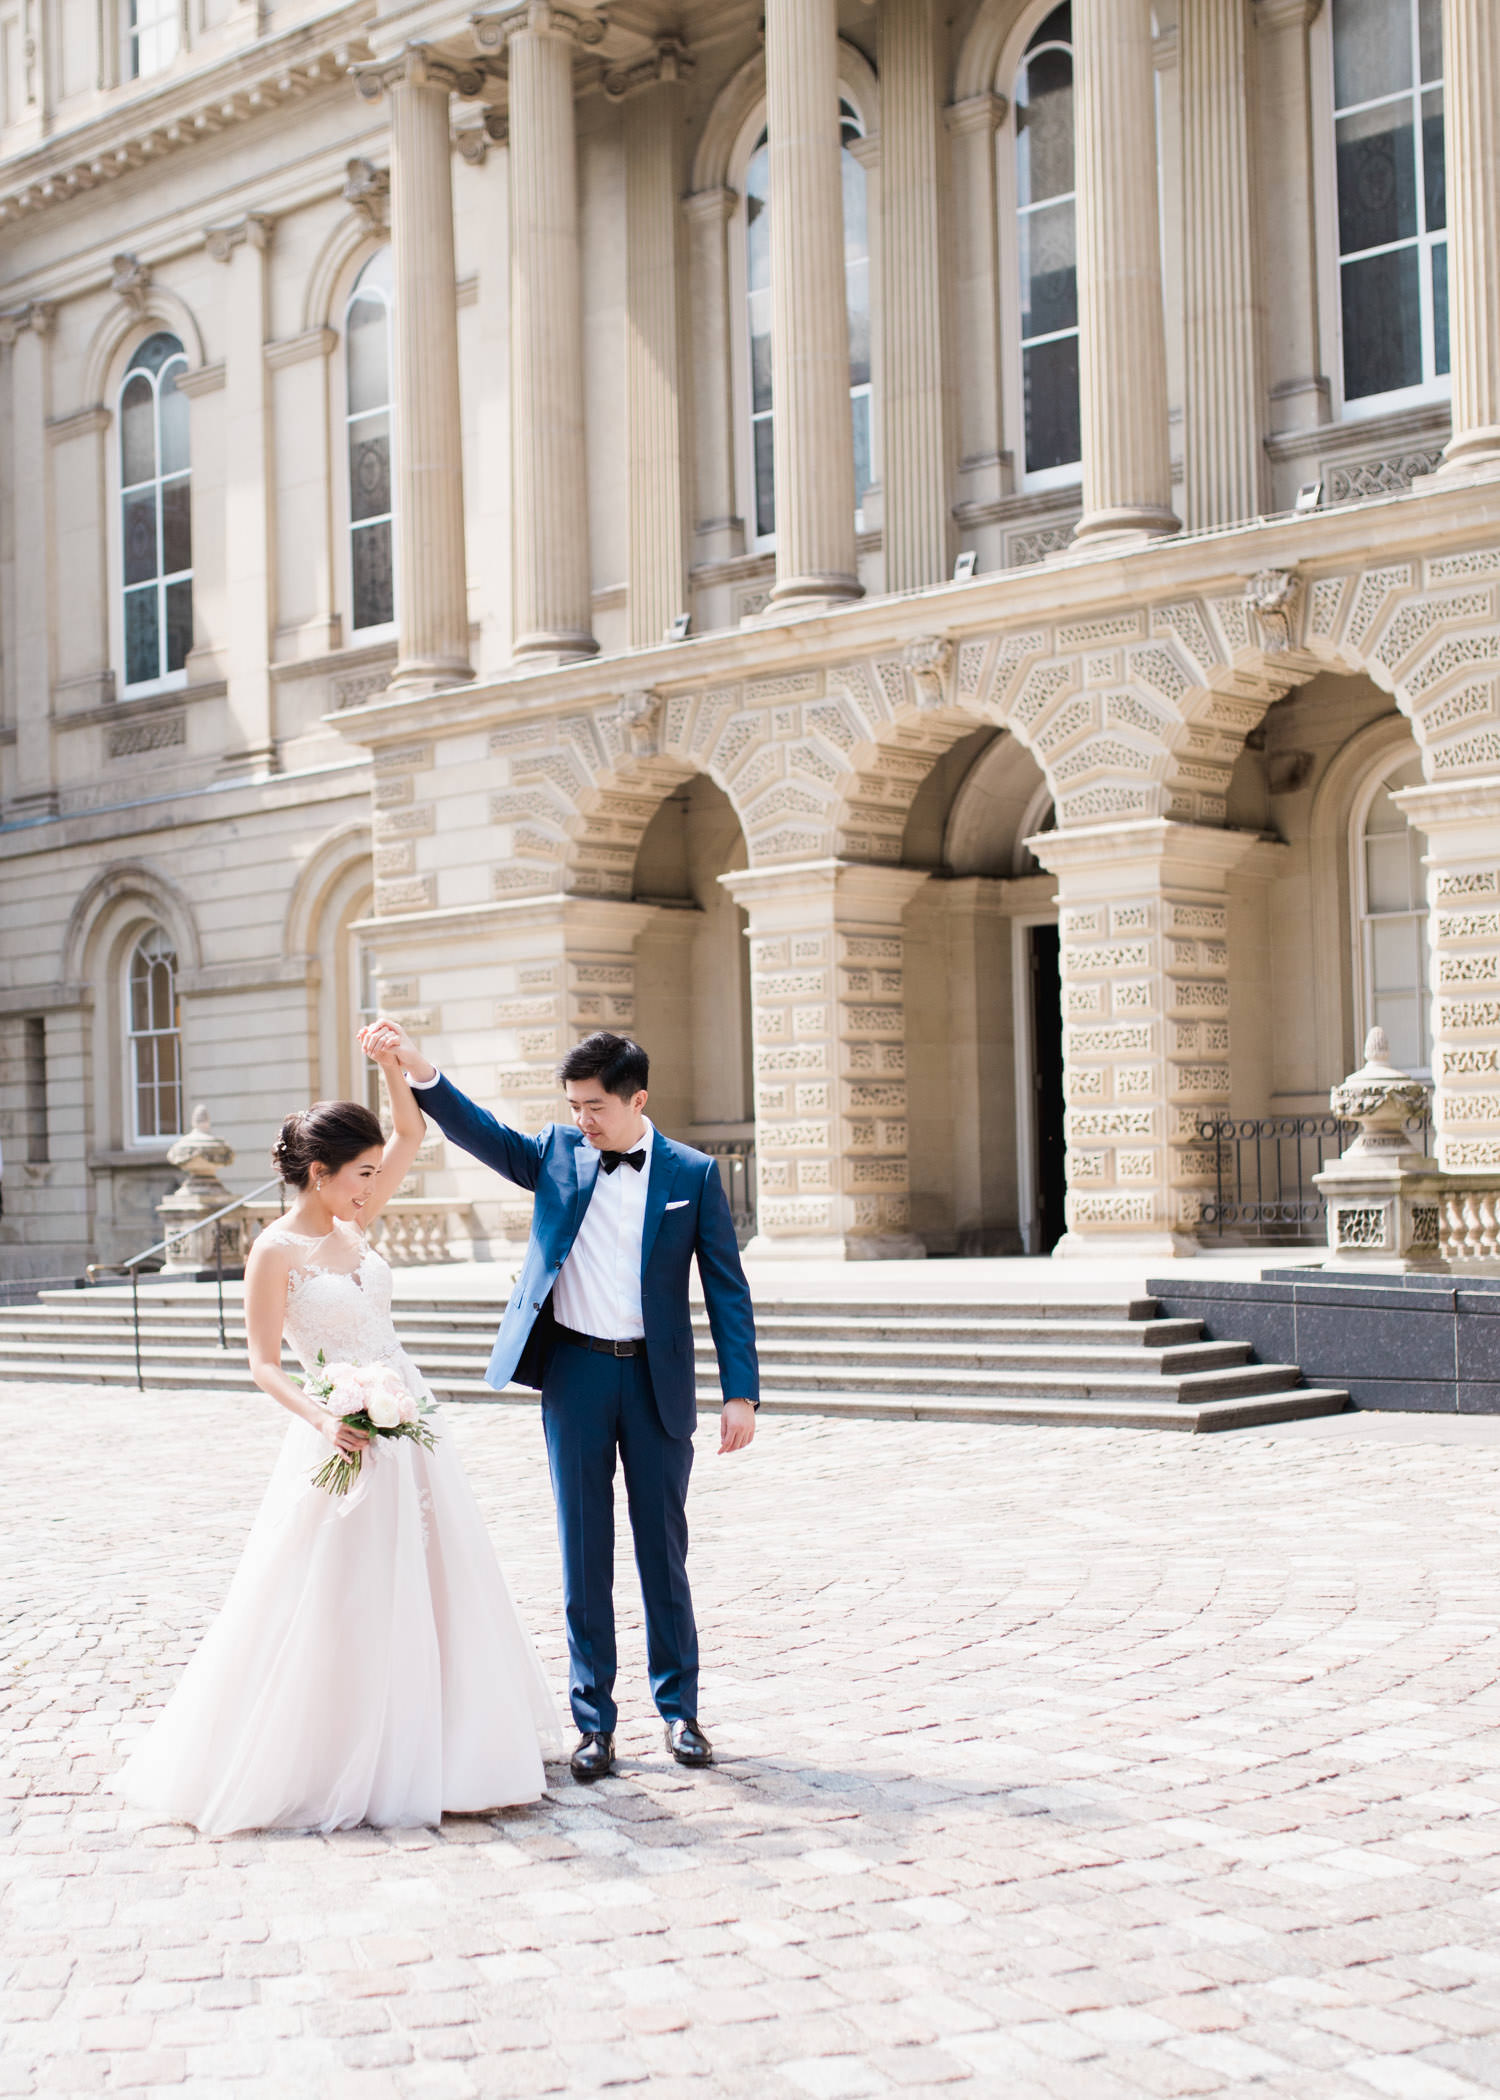 Bride and groom dance at Osgoode hall in Toronto